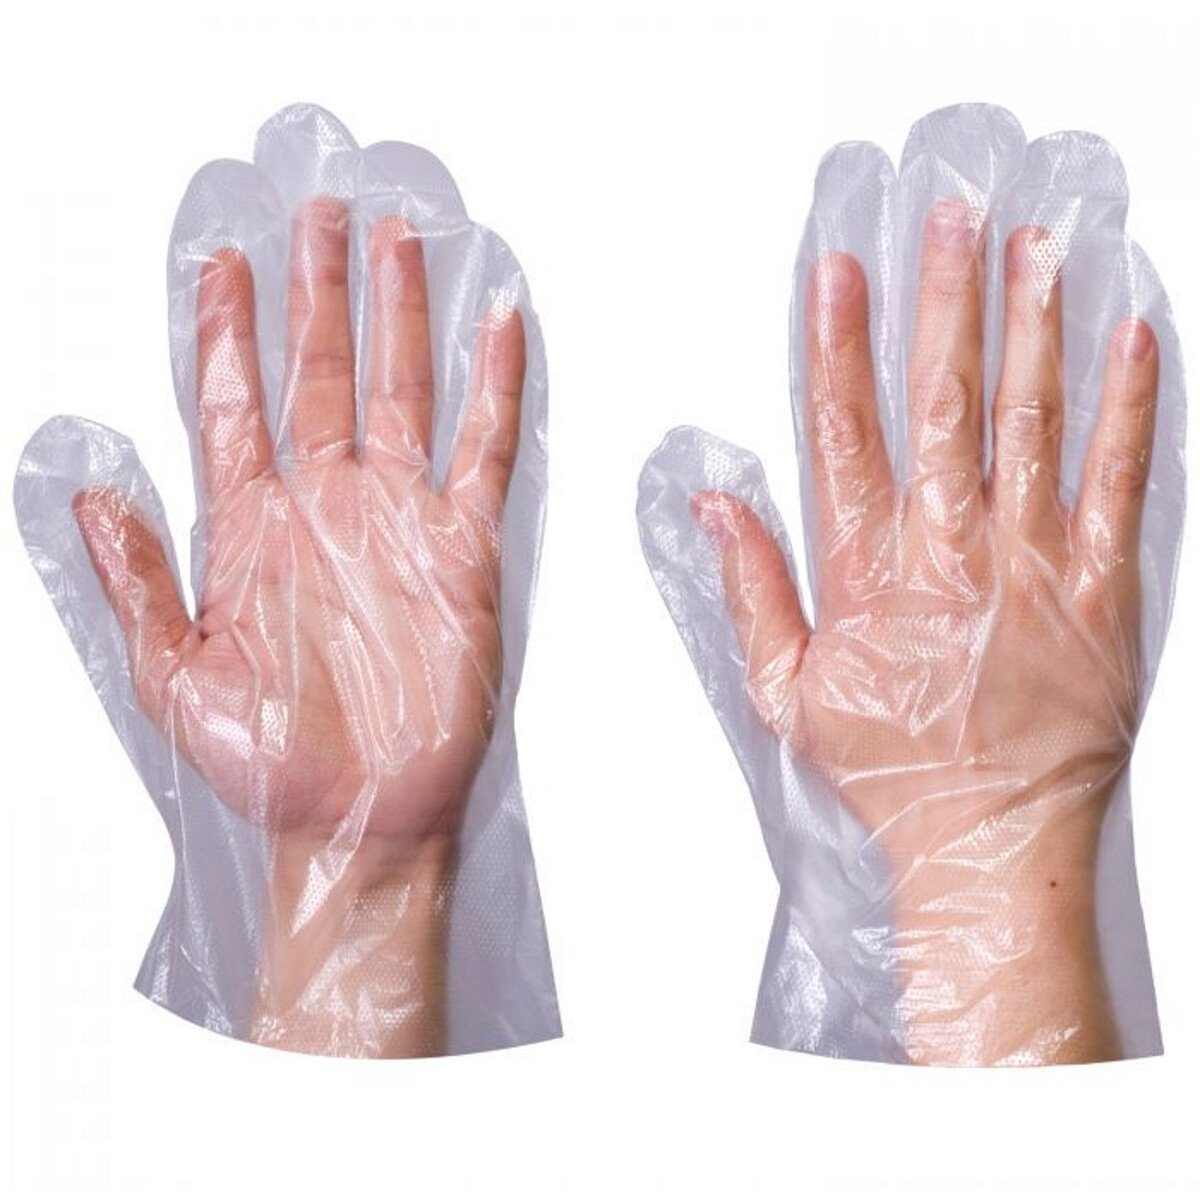 Supertouch 13603 PE Disposable Gloves One Size (Pack of 100) Clear